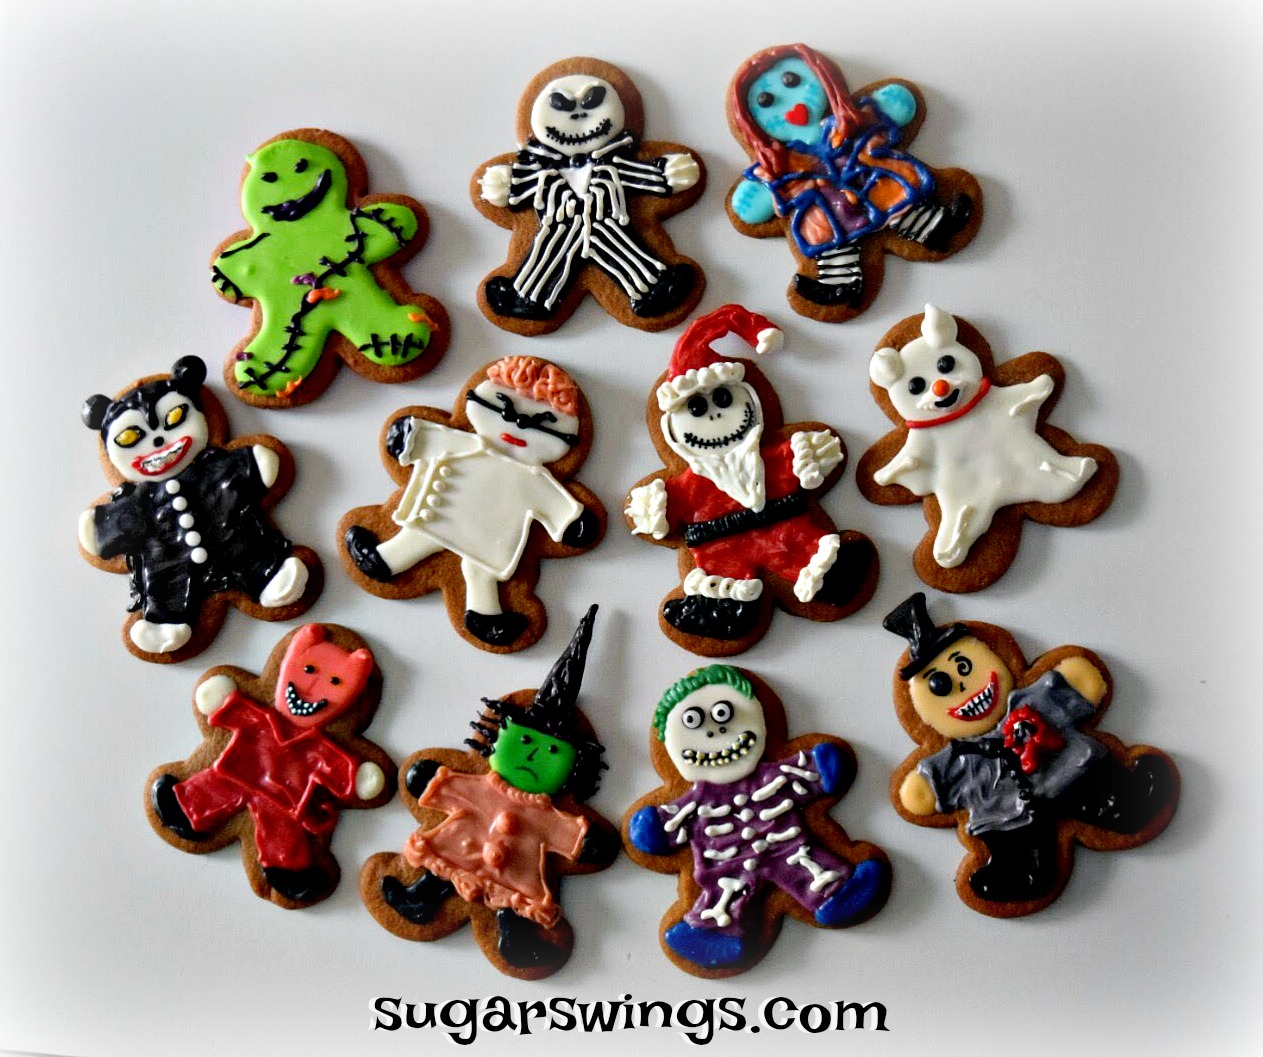 Sugar Swings! Serve Some: The Nightmare Before Christmas Gingerbread ...